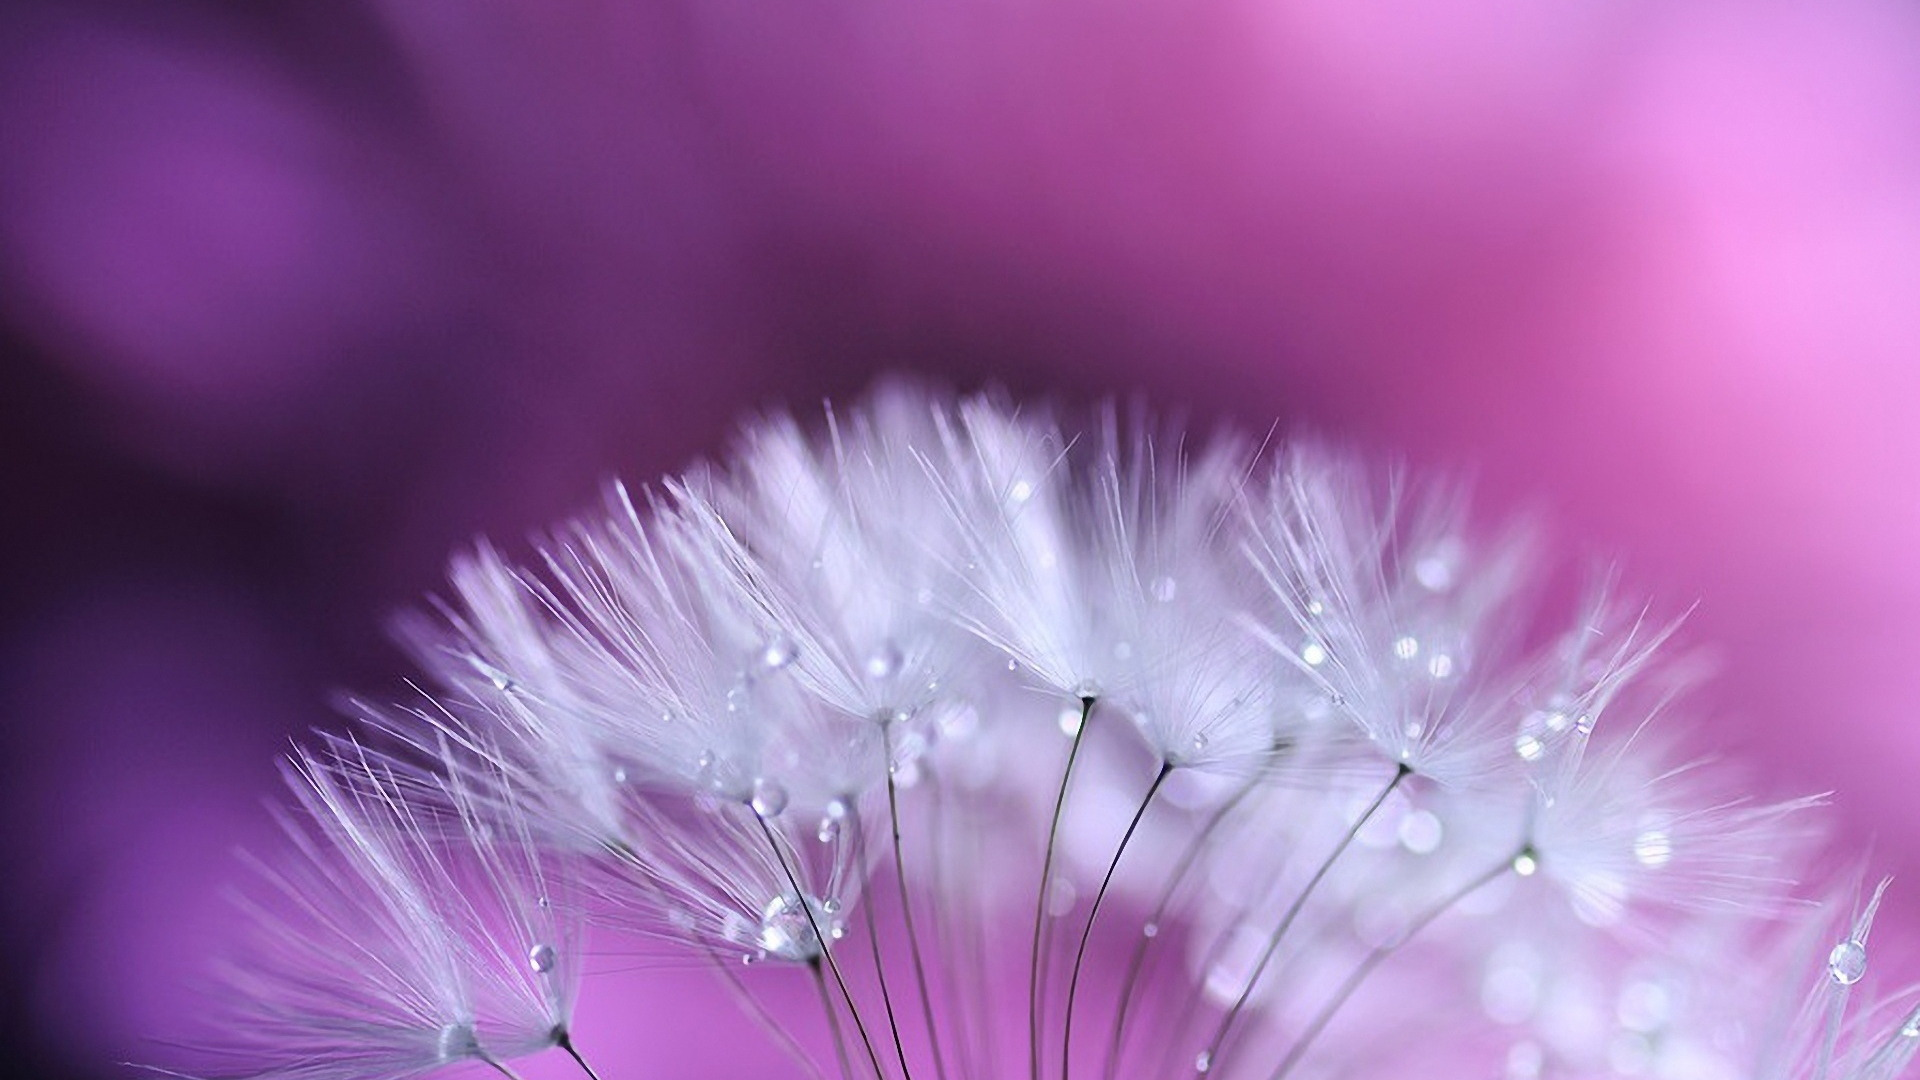 Dandelion High Quality Wallpaper